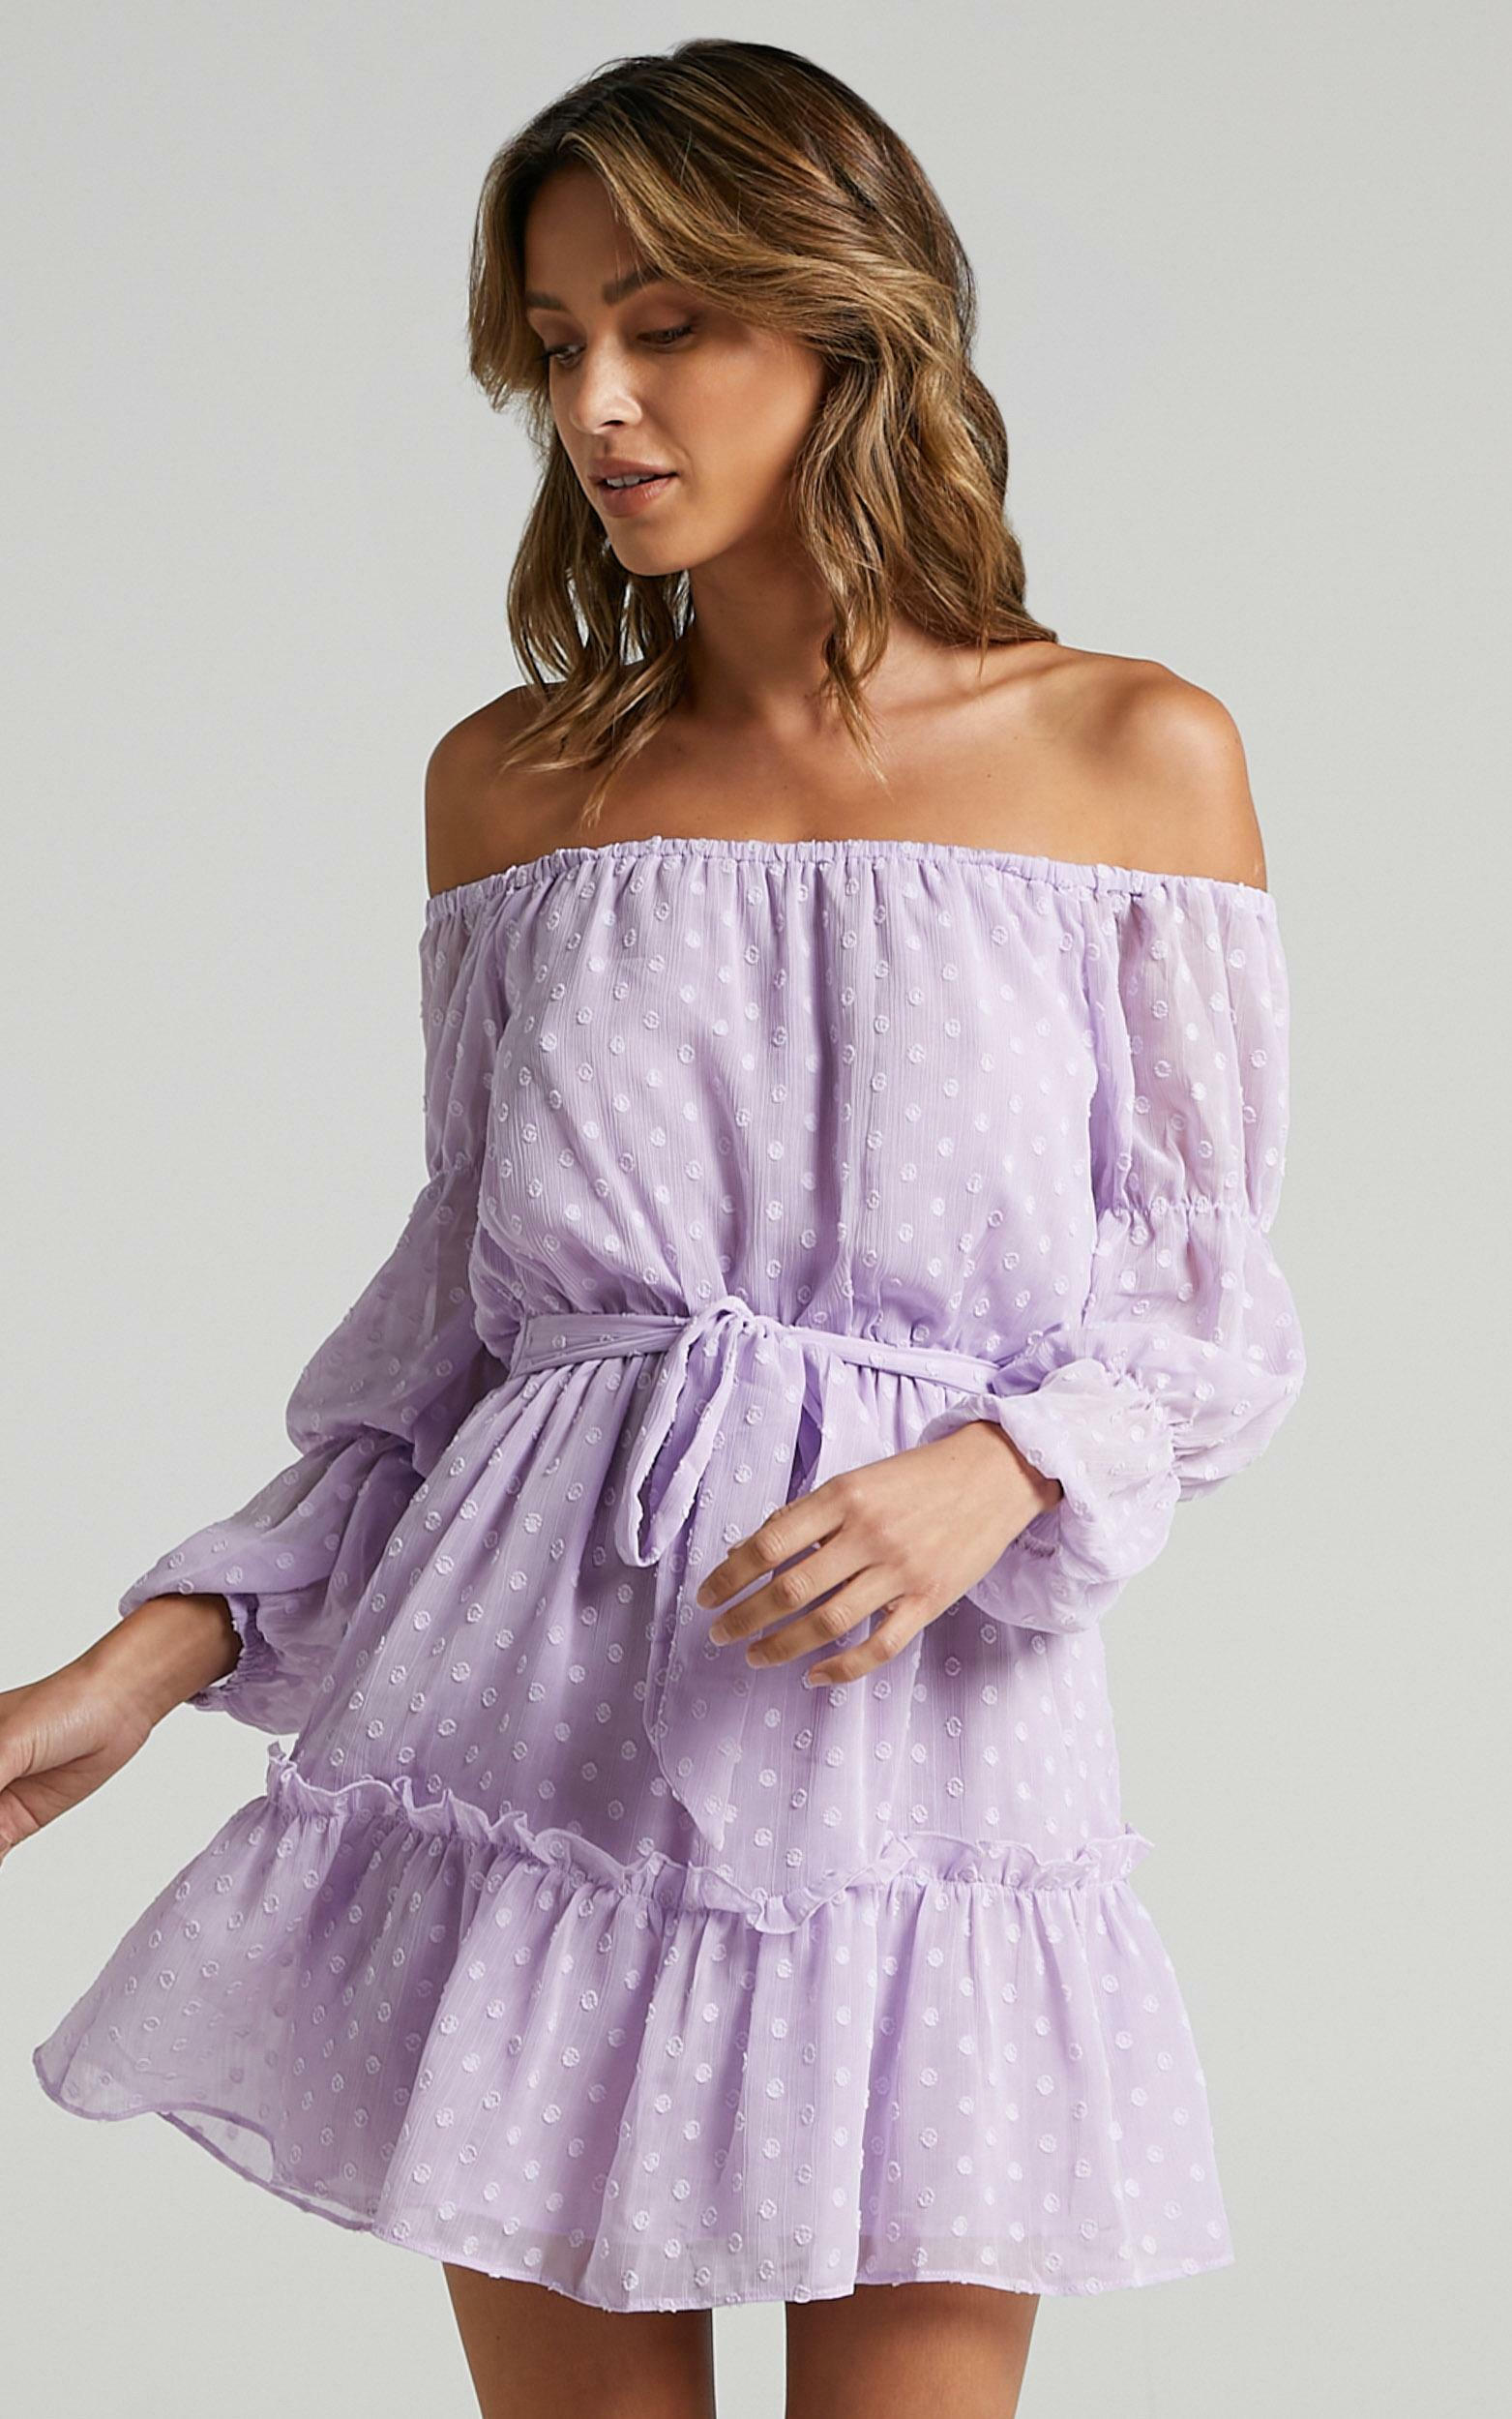 Party Life Dress in Lilac - 06, PRP1, hi-res image number null